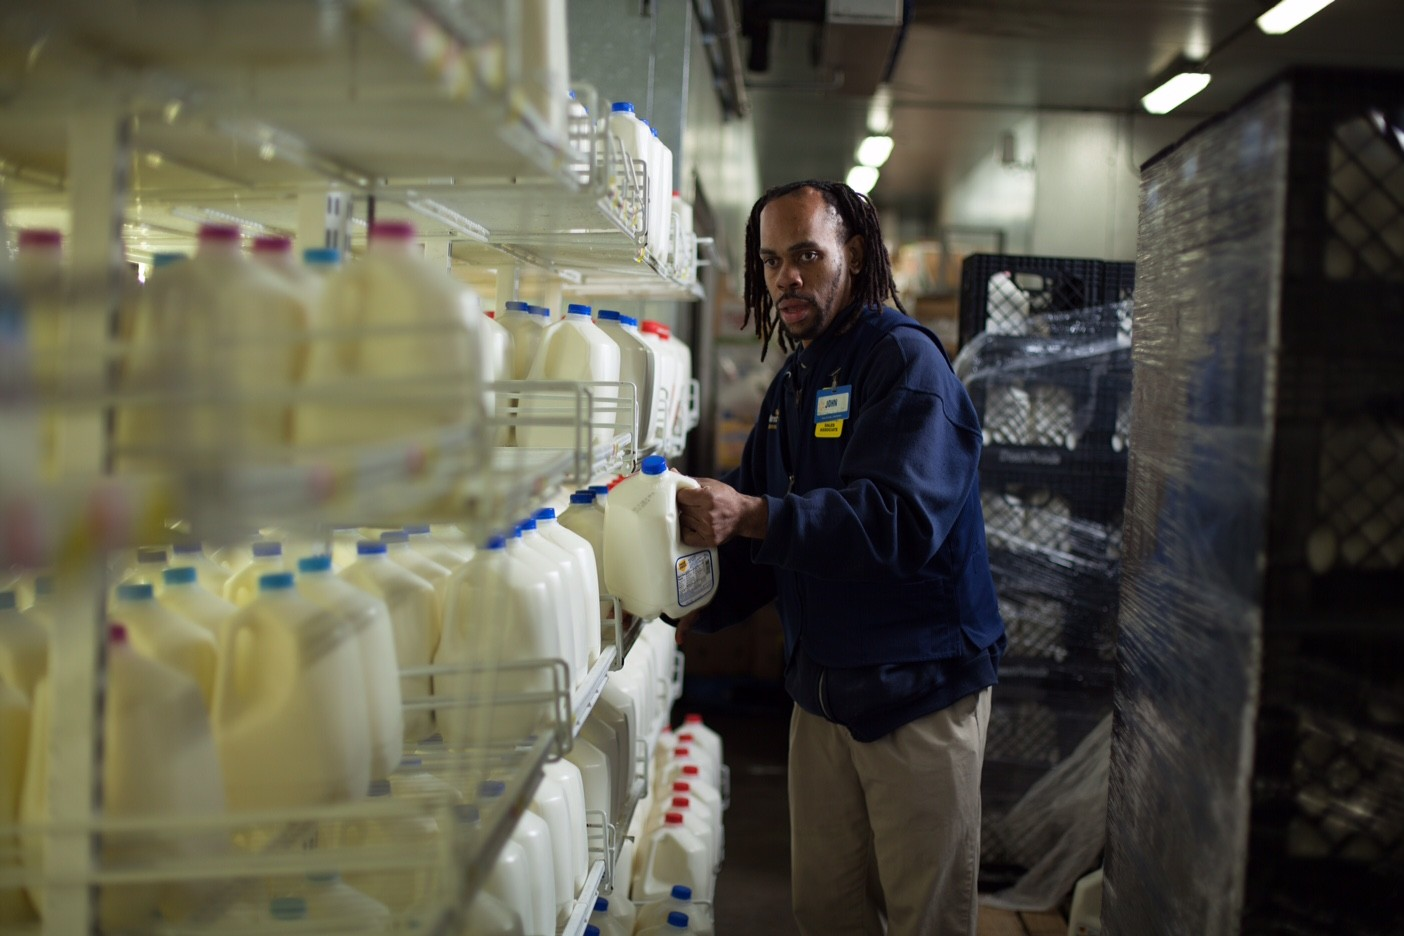 John Geeter grabs a gallon of milk from a shelf in a Walmart dairy department back room